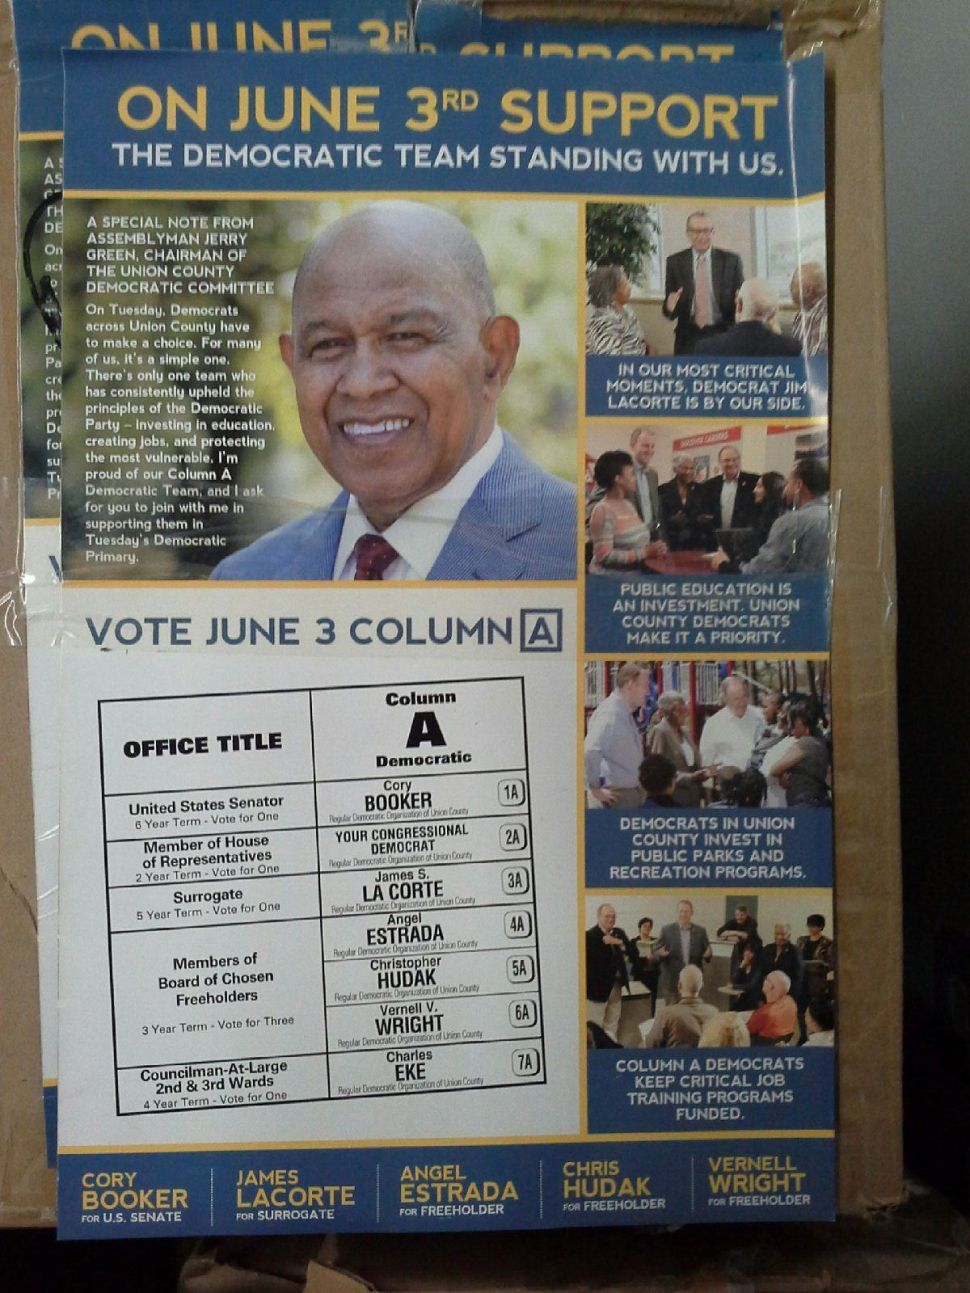 CD12 Collision: Mapp goes after Green over mail piece